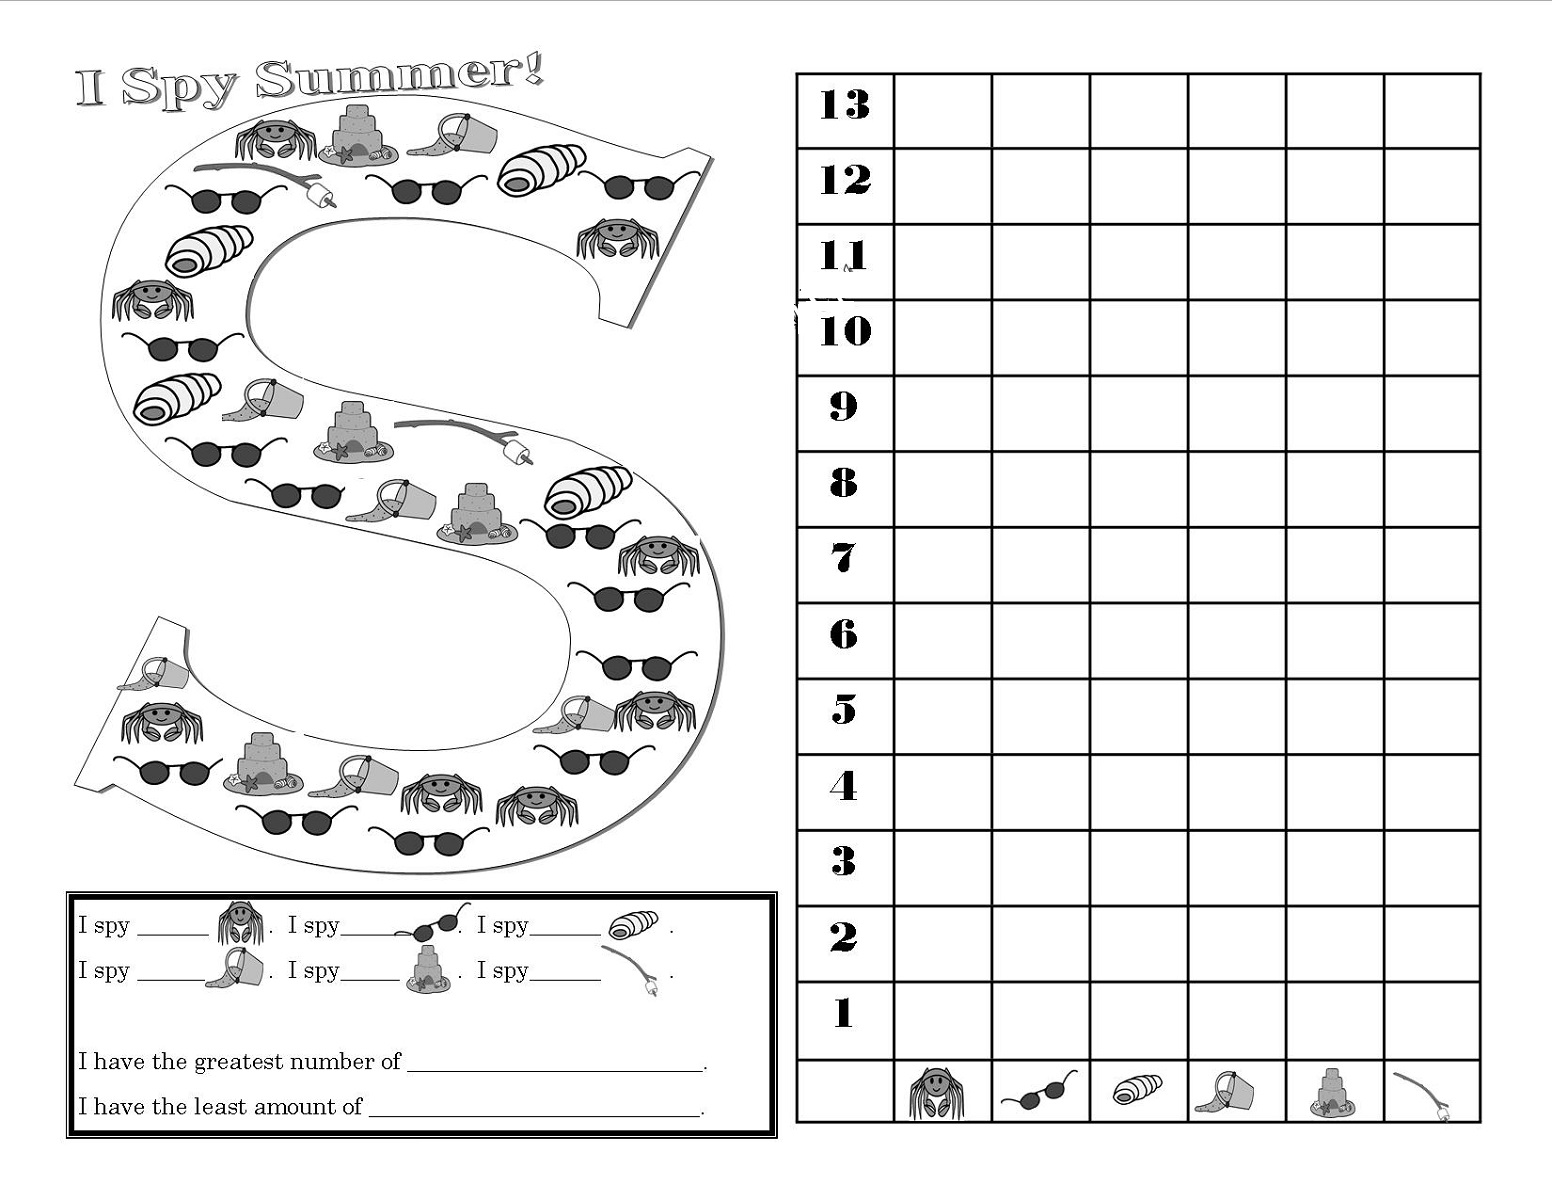 fun activity sheets spying - Fun Activity Sheets